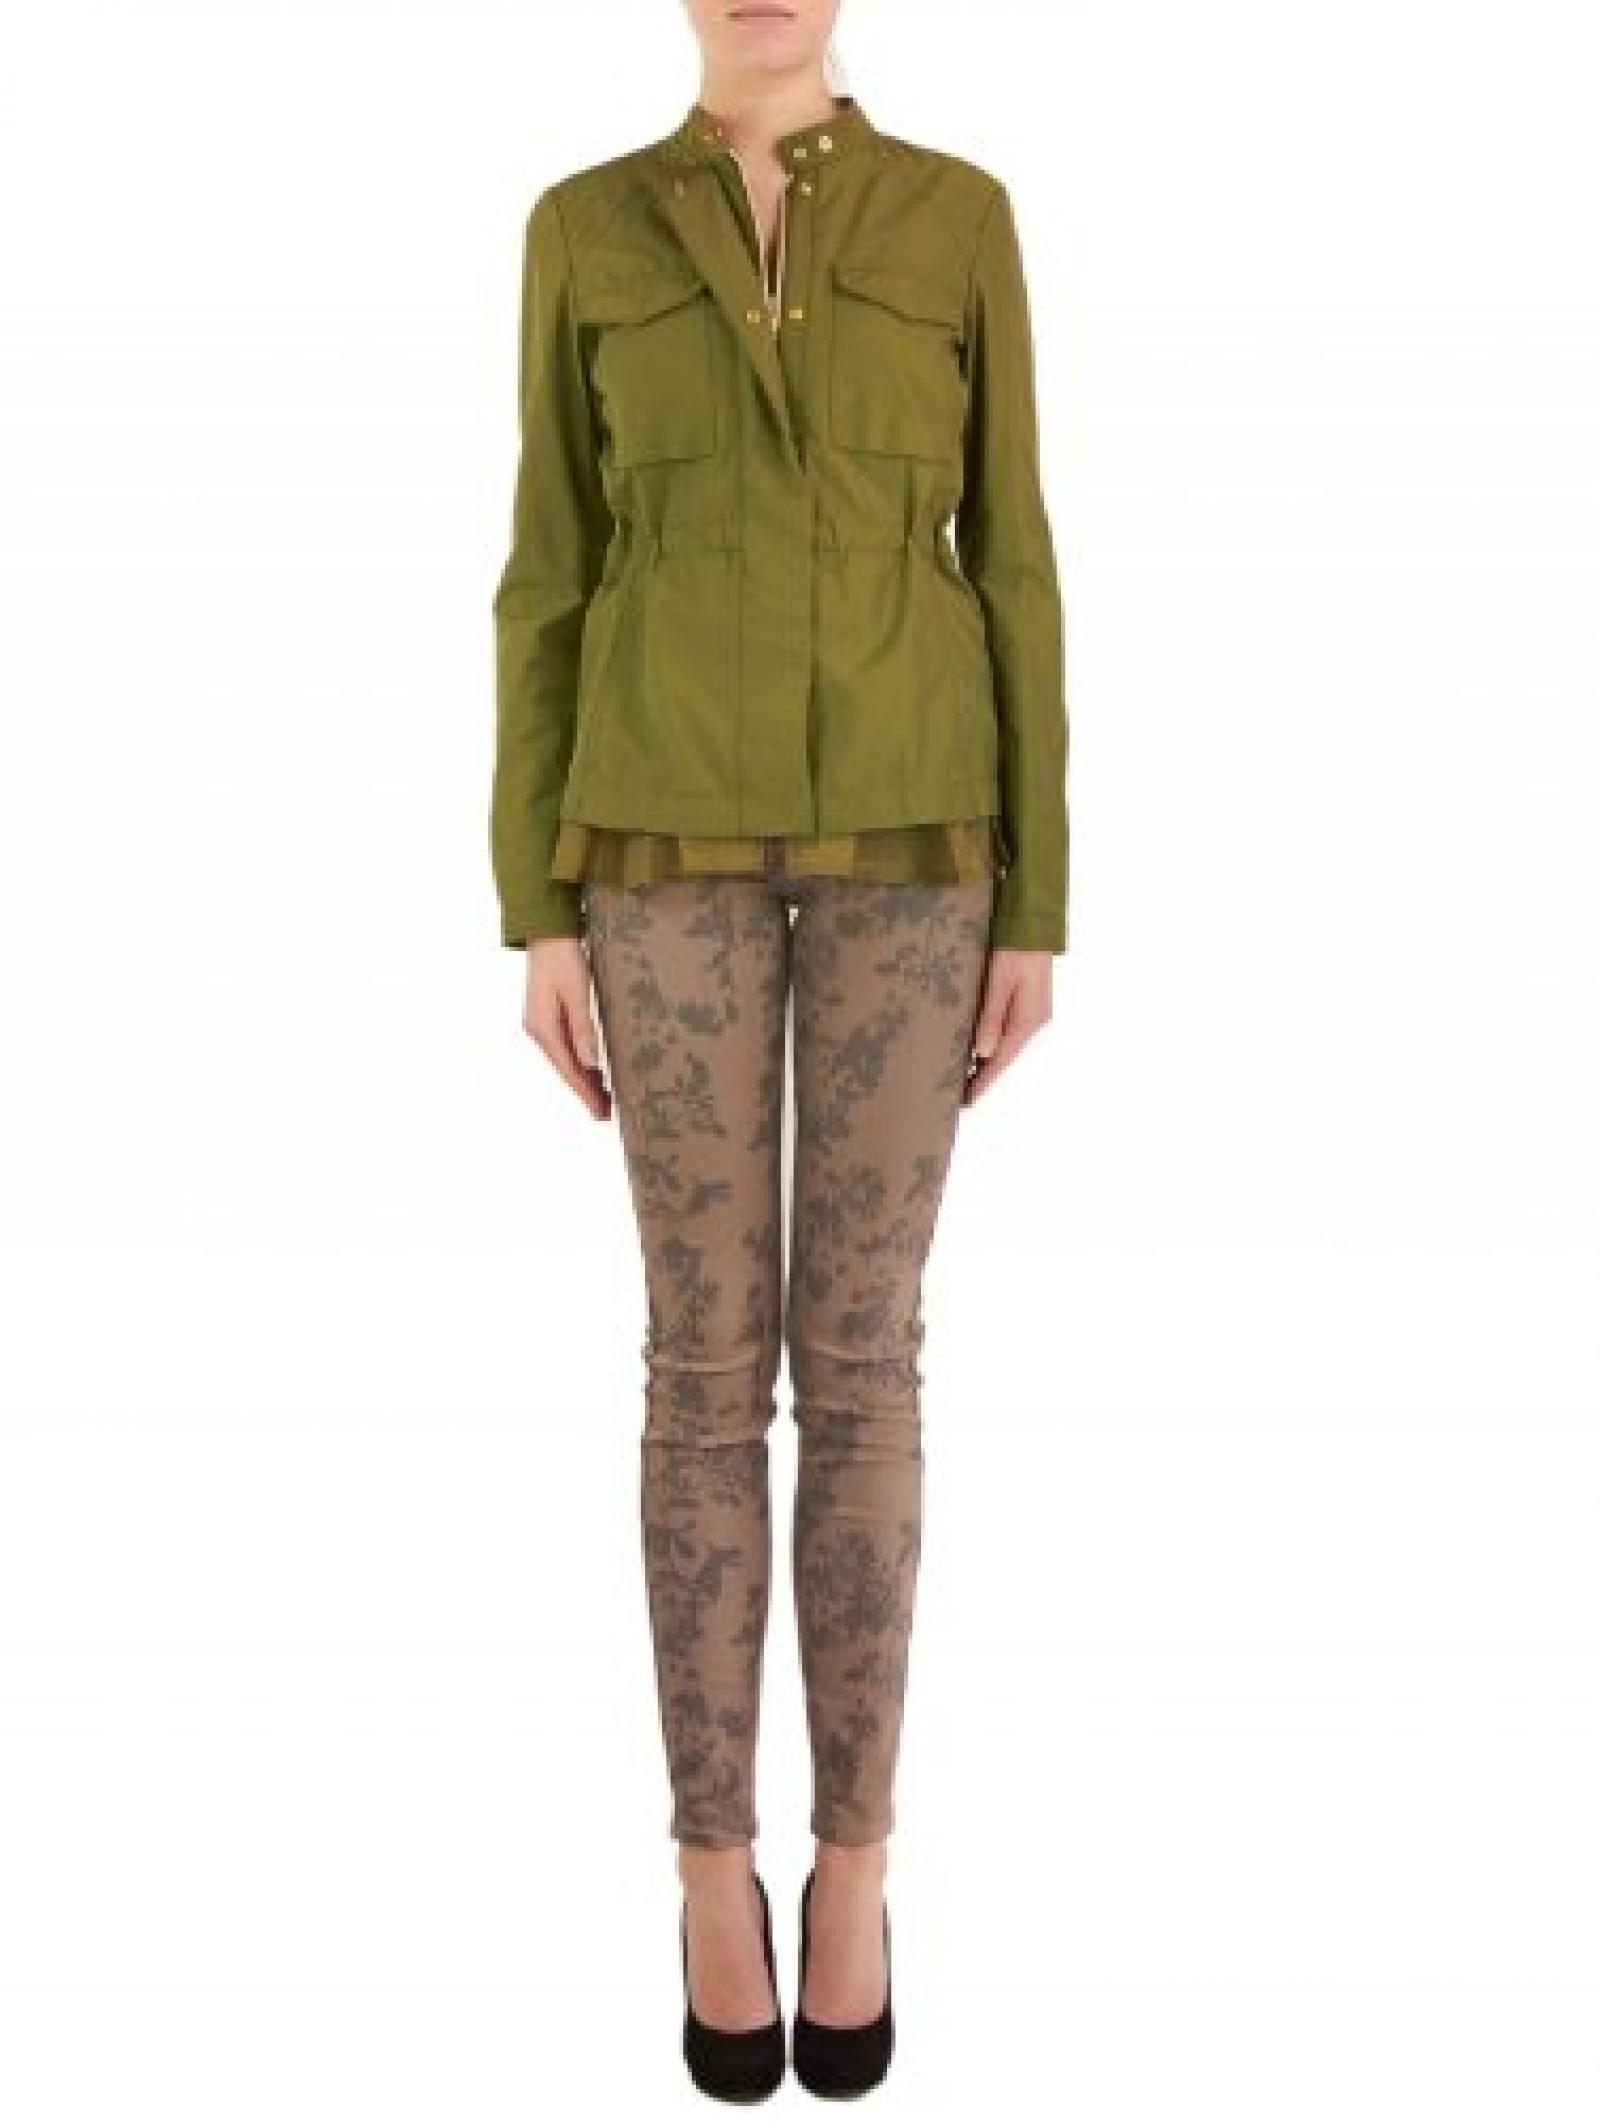 Peuterey Damen Fieldjacket Cher Bmat in Khaki